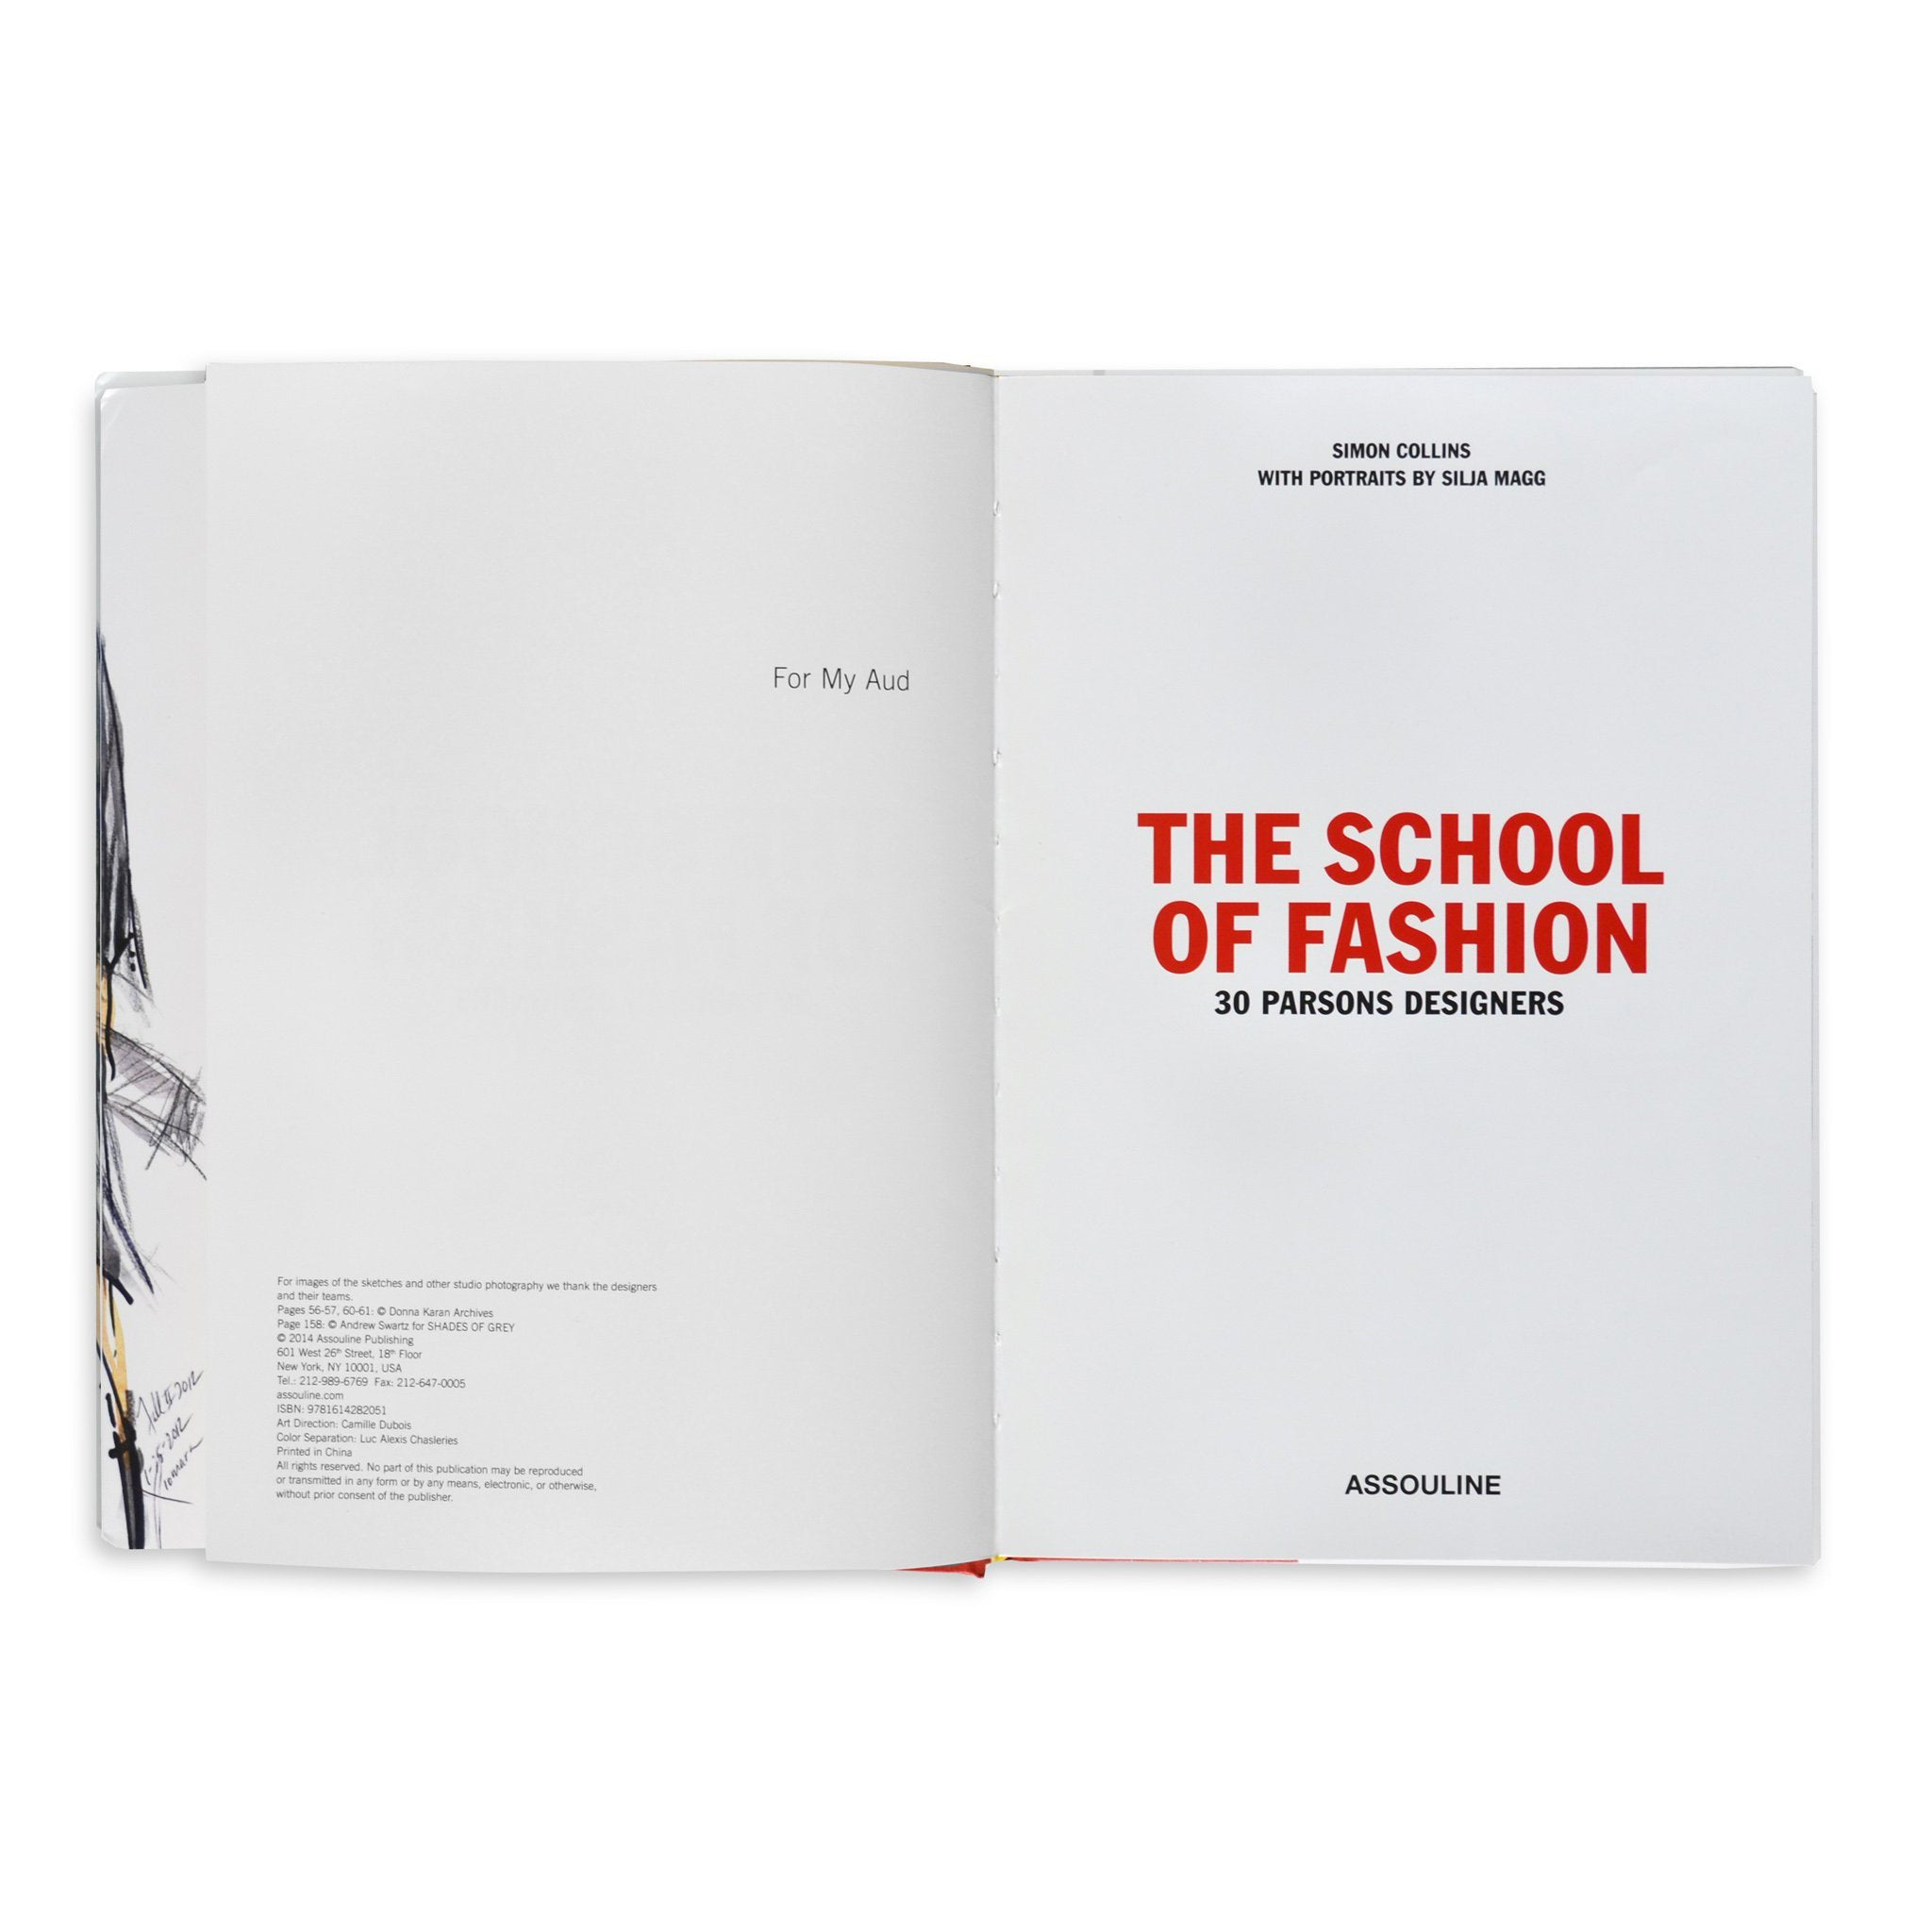 The School of Fashion. 30 Parsons Designers